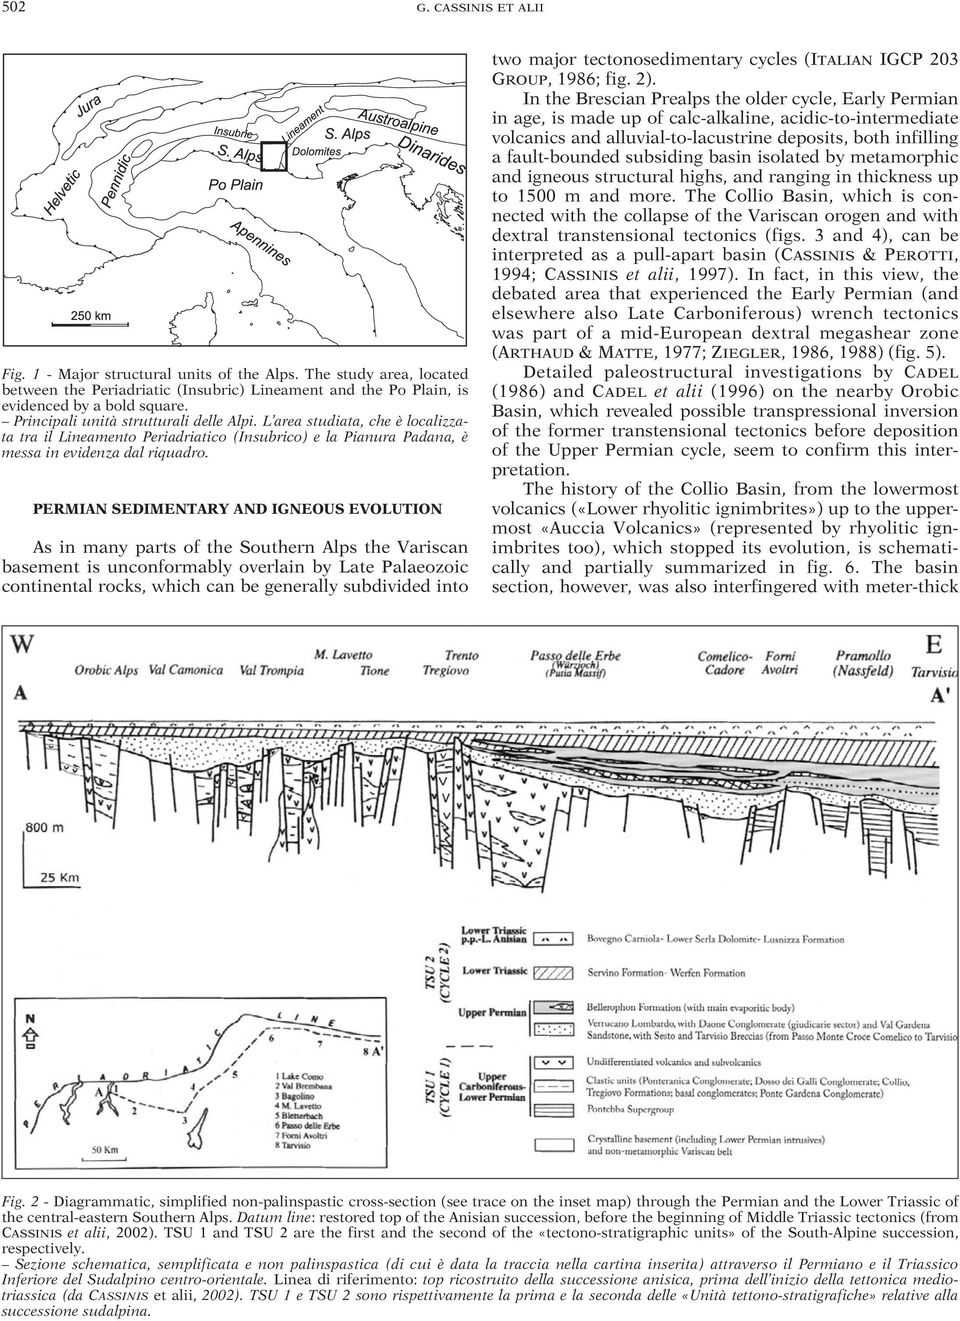 PERMIAN SEDIMENTARY AND IGNEOUS EVOLUTION As in many parts of the Southern Alps the Variscan basement is unconformably overlain by Late Palaeozoic continental rocks, which can be generally subdivided